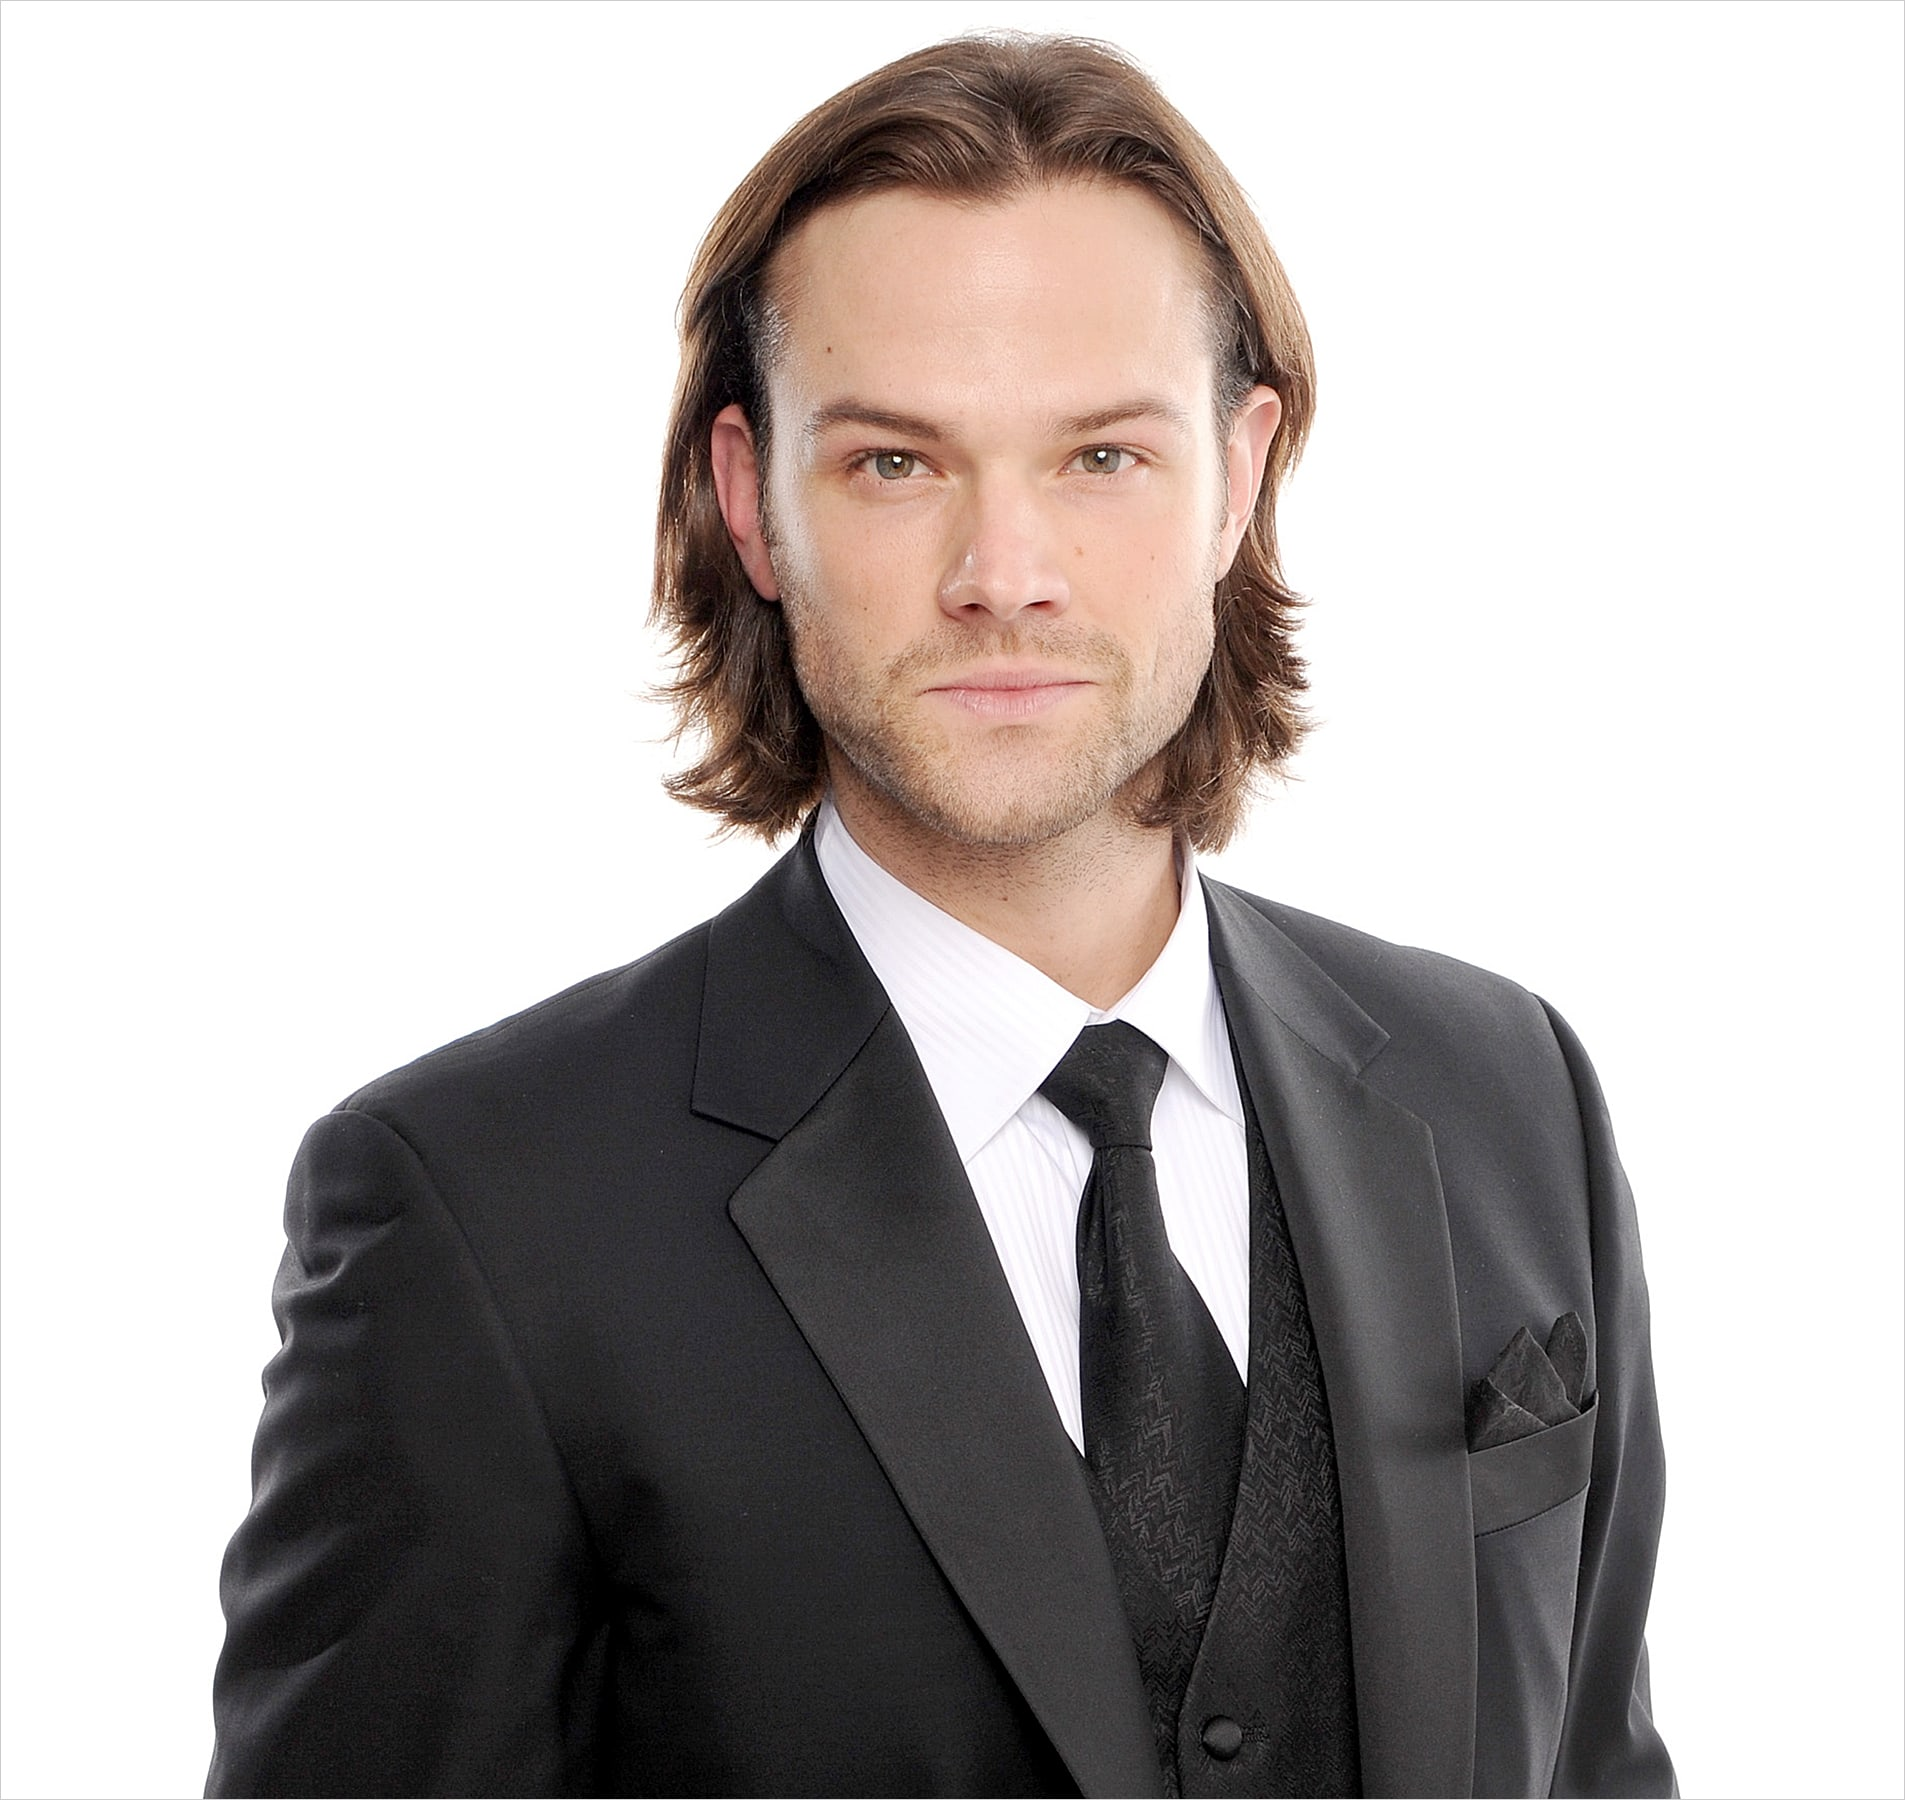 jared padalecki hd desktop wallpapers | 7wallpapers